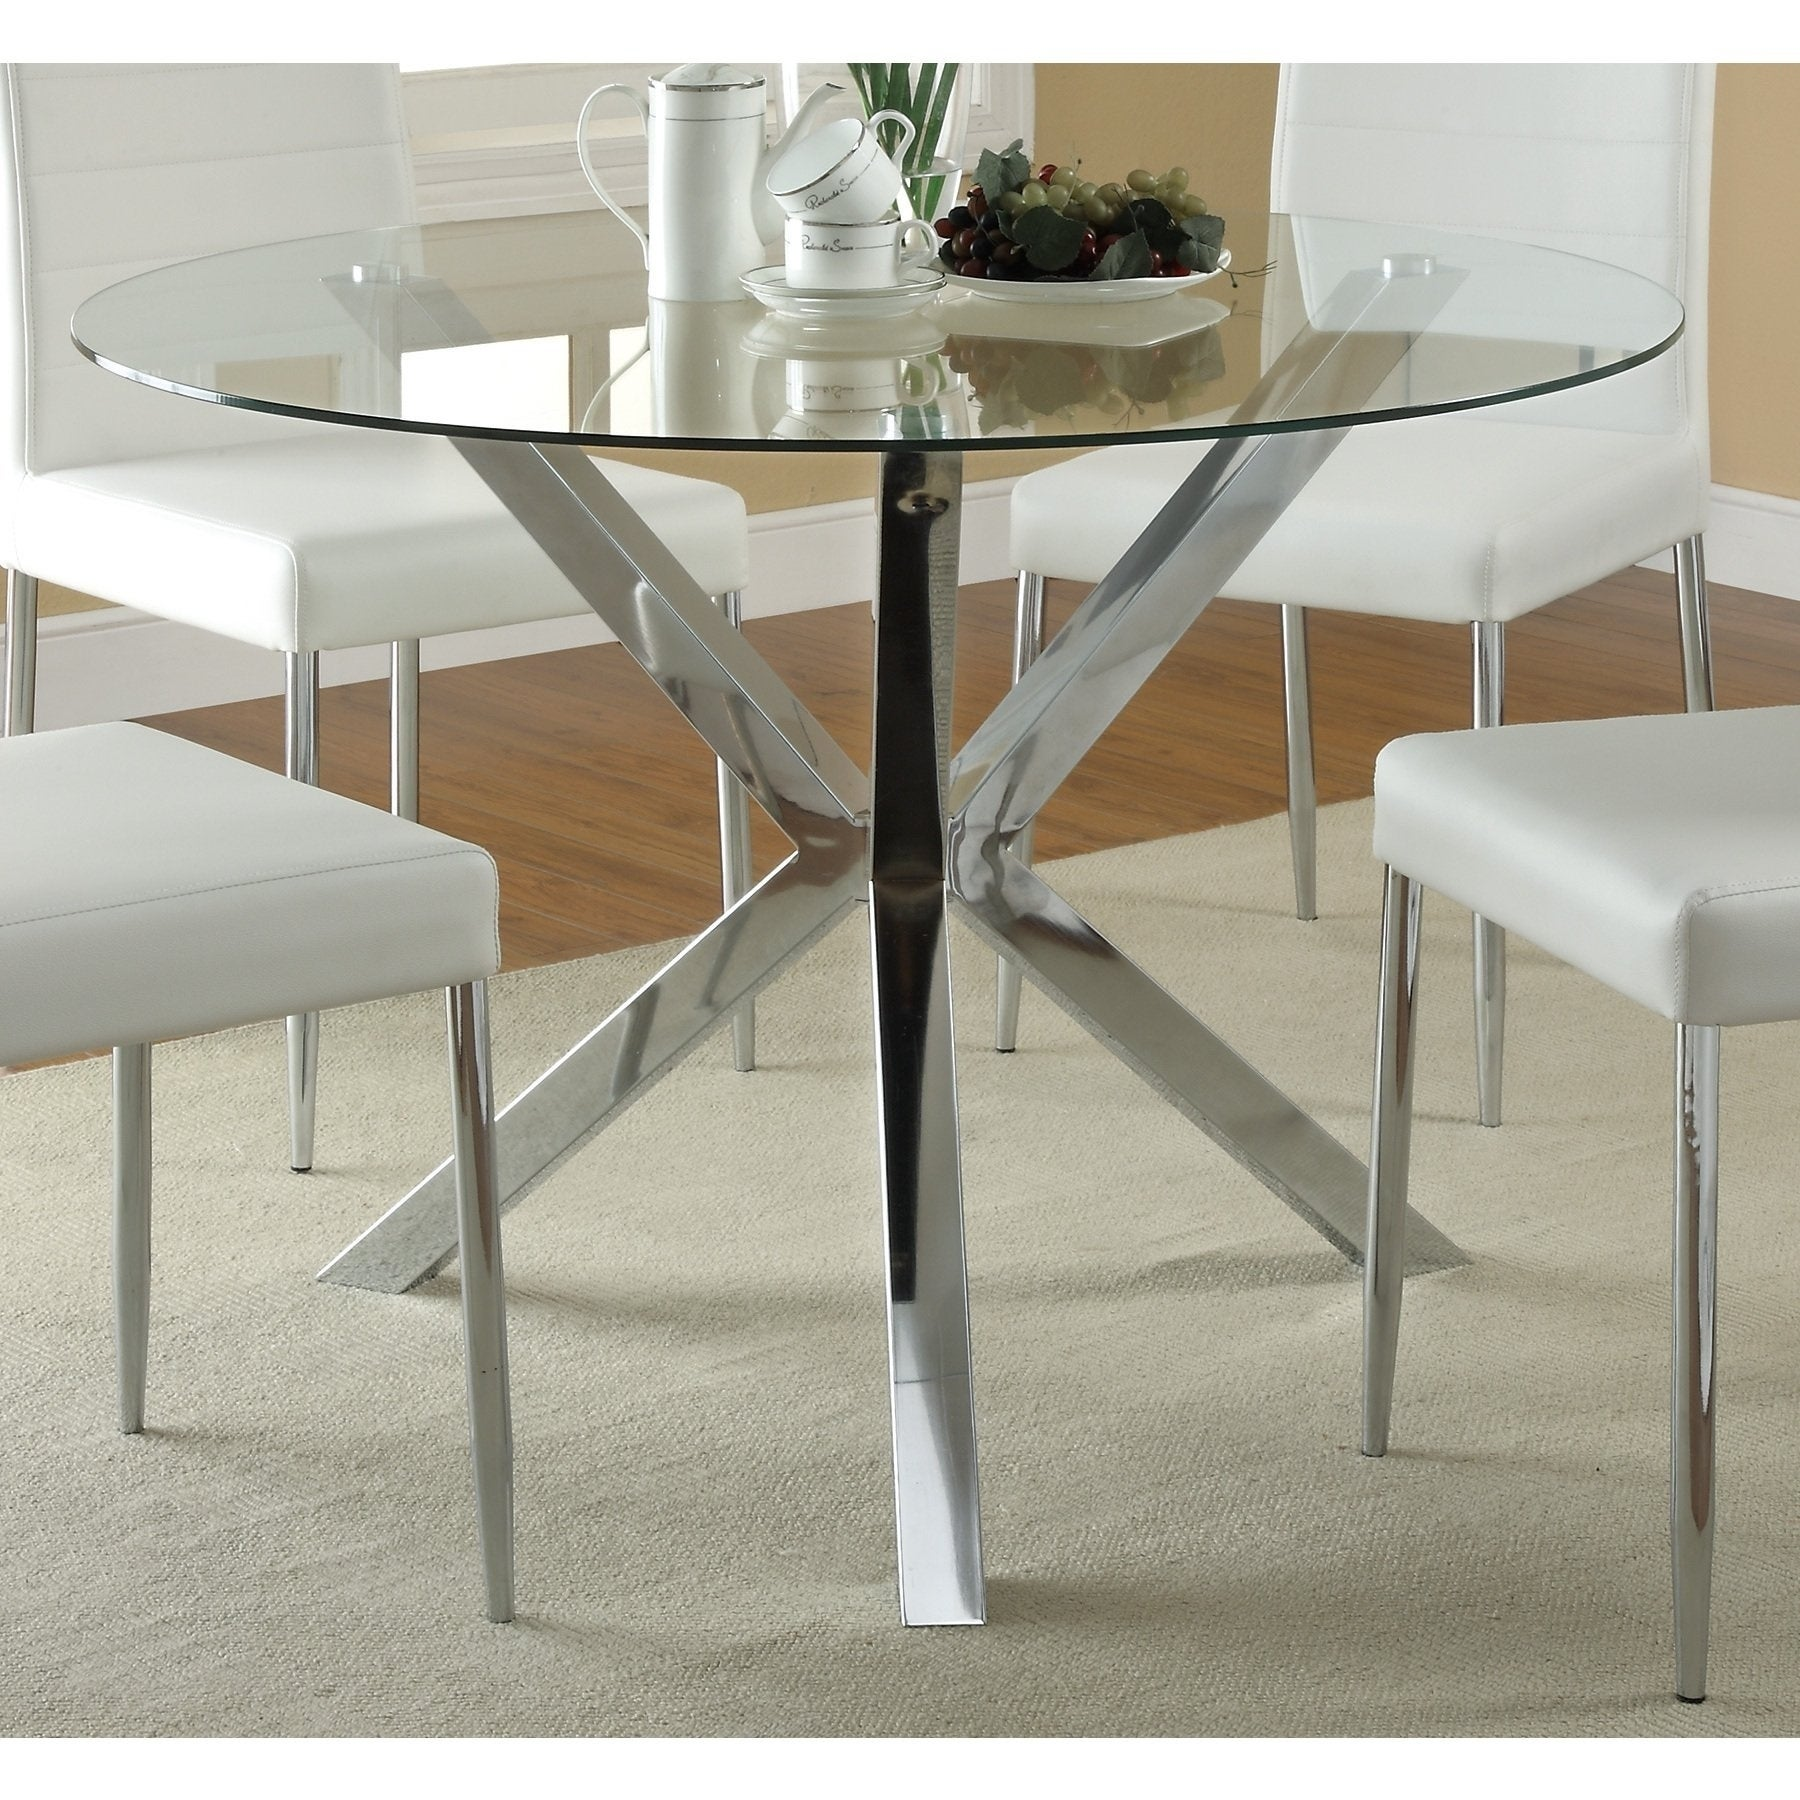 Shop Coaster Company Chrome Glass Top Dining Table   On Sale   Free  Shipping Today   Overstock.com   12344846